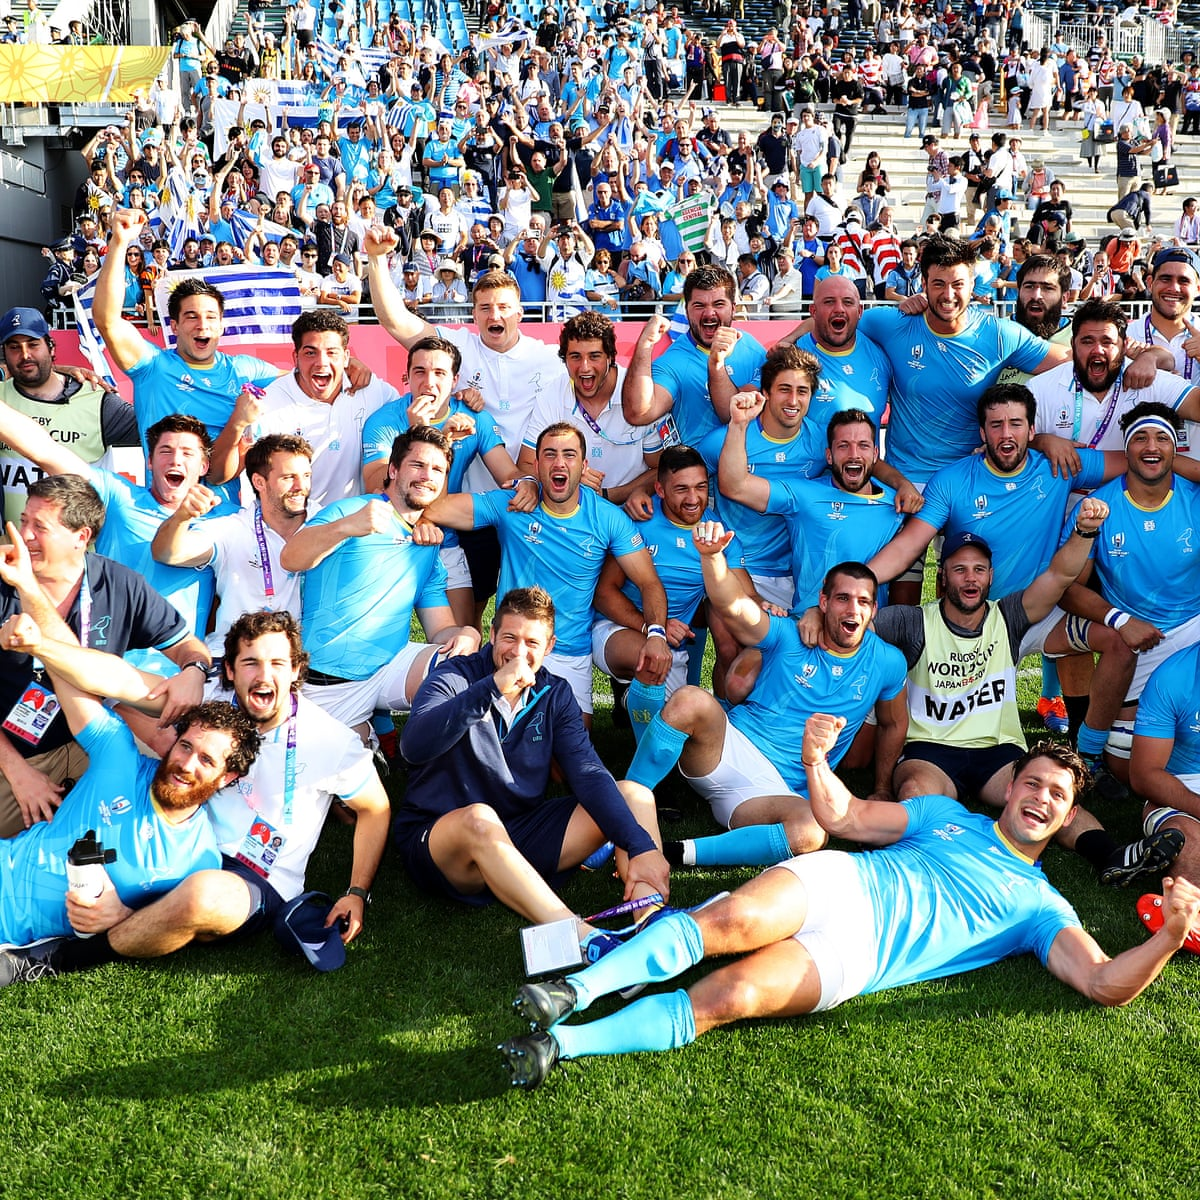 Uruguay S Shock Win Over Fiji Was Our Greatest This Is How We Did It Ignacio Chans Sport The Guardian